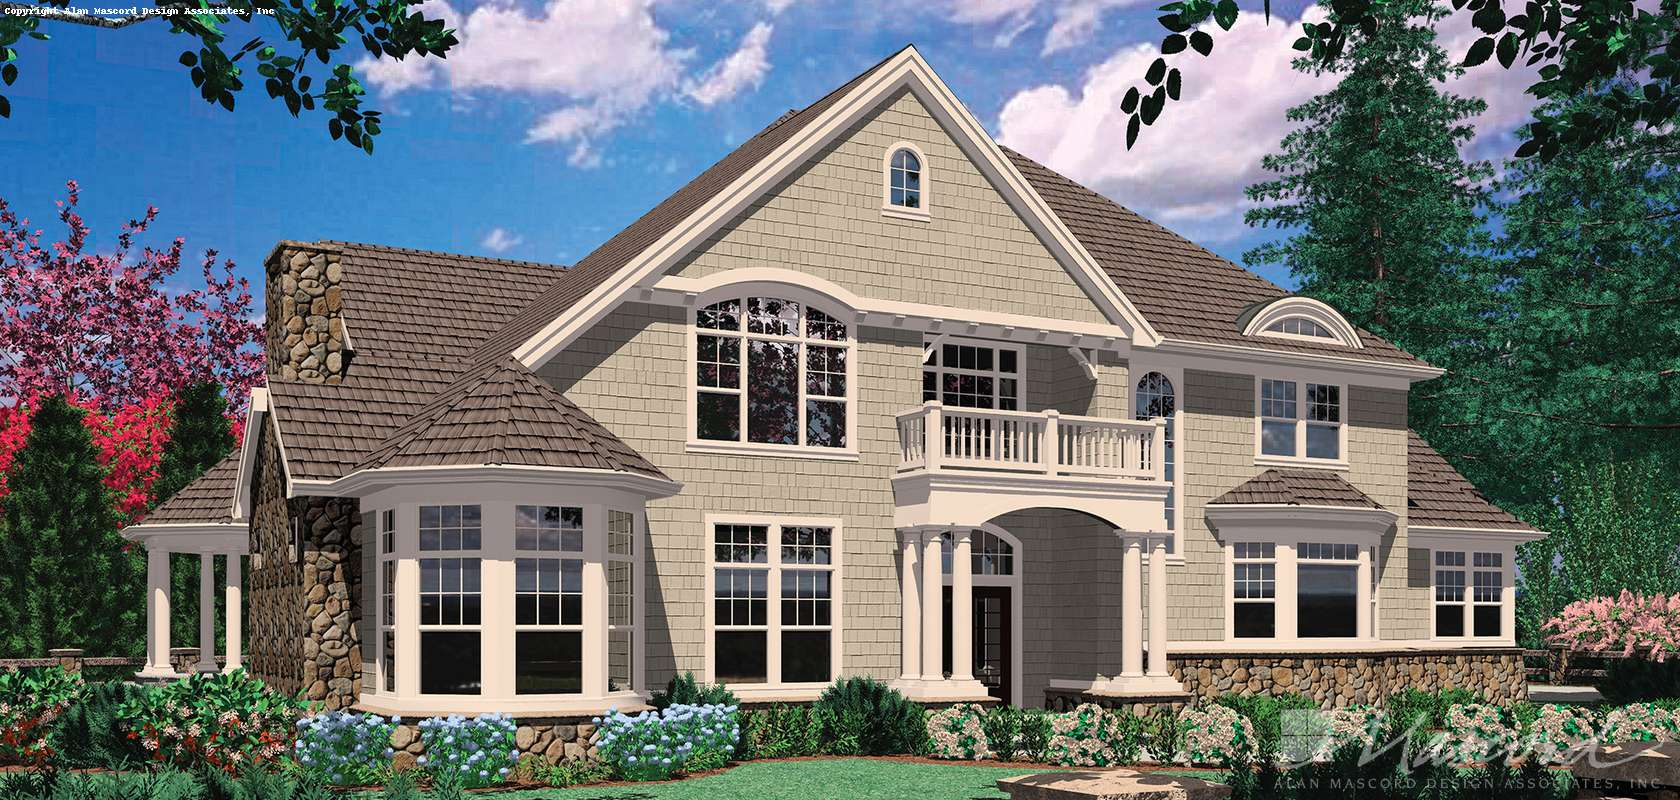 Mascord House Plan 2425: The Stolon